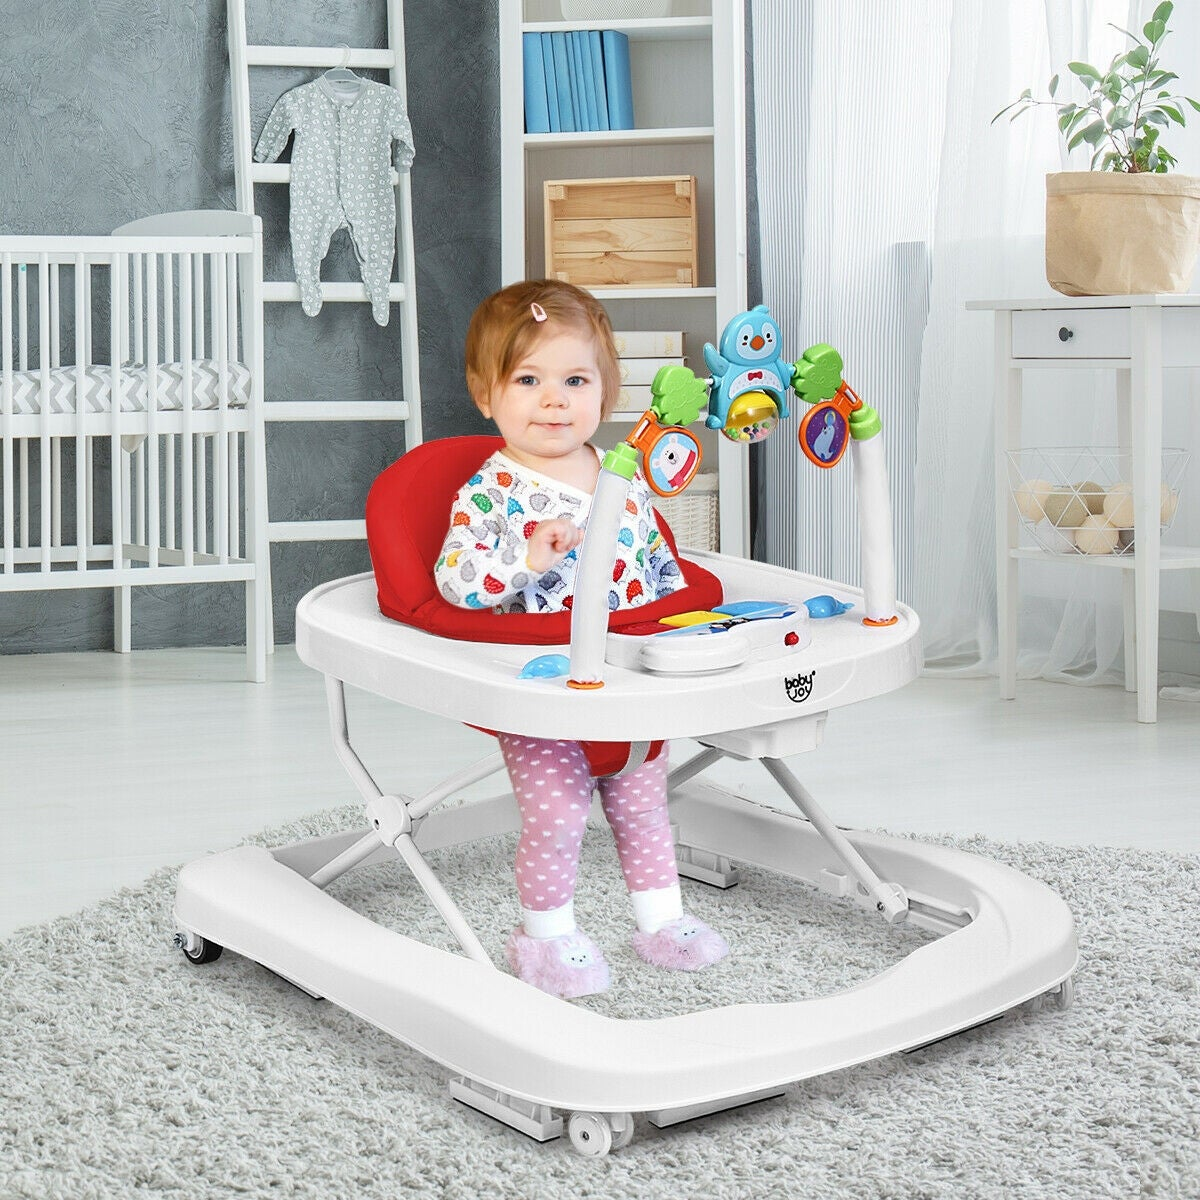 Foldable Adjustable Toddler Walker with Padded Seat,Sit-to-Stand Table Chairs Set with Jumping Board and Sound Lights Leadmall Baby Walker Activity Center with Wheels Putter